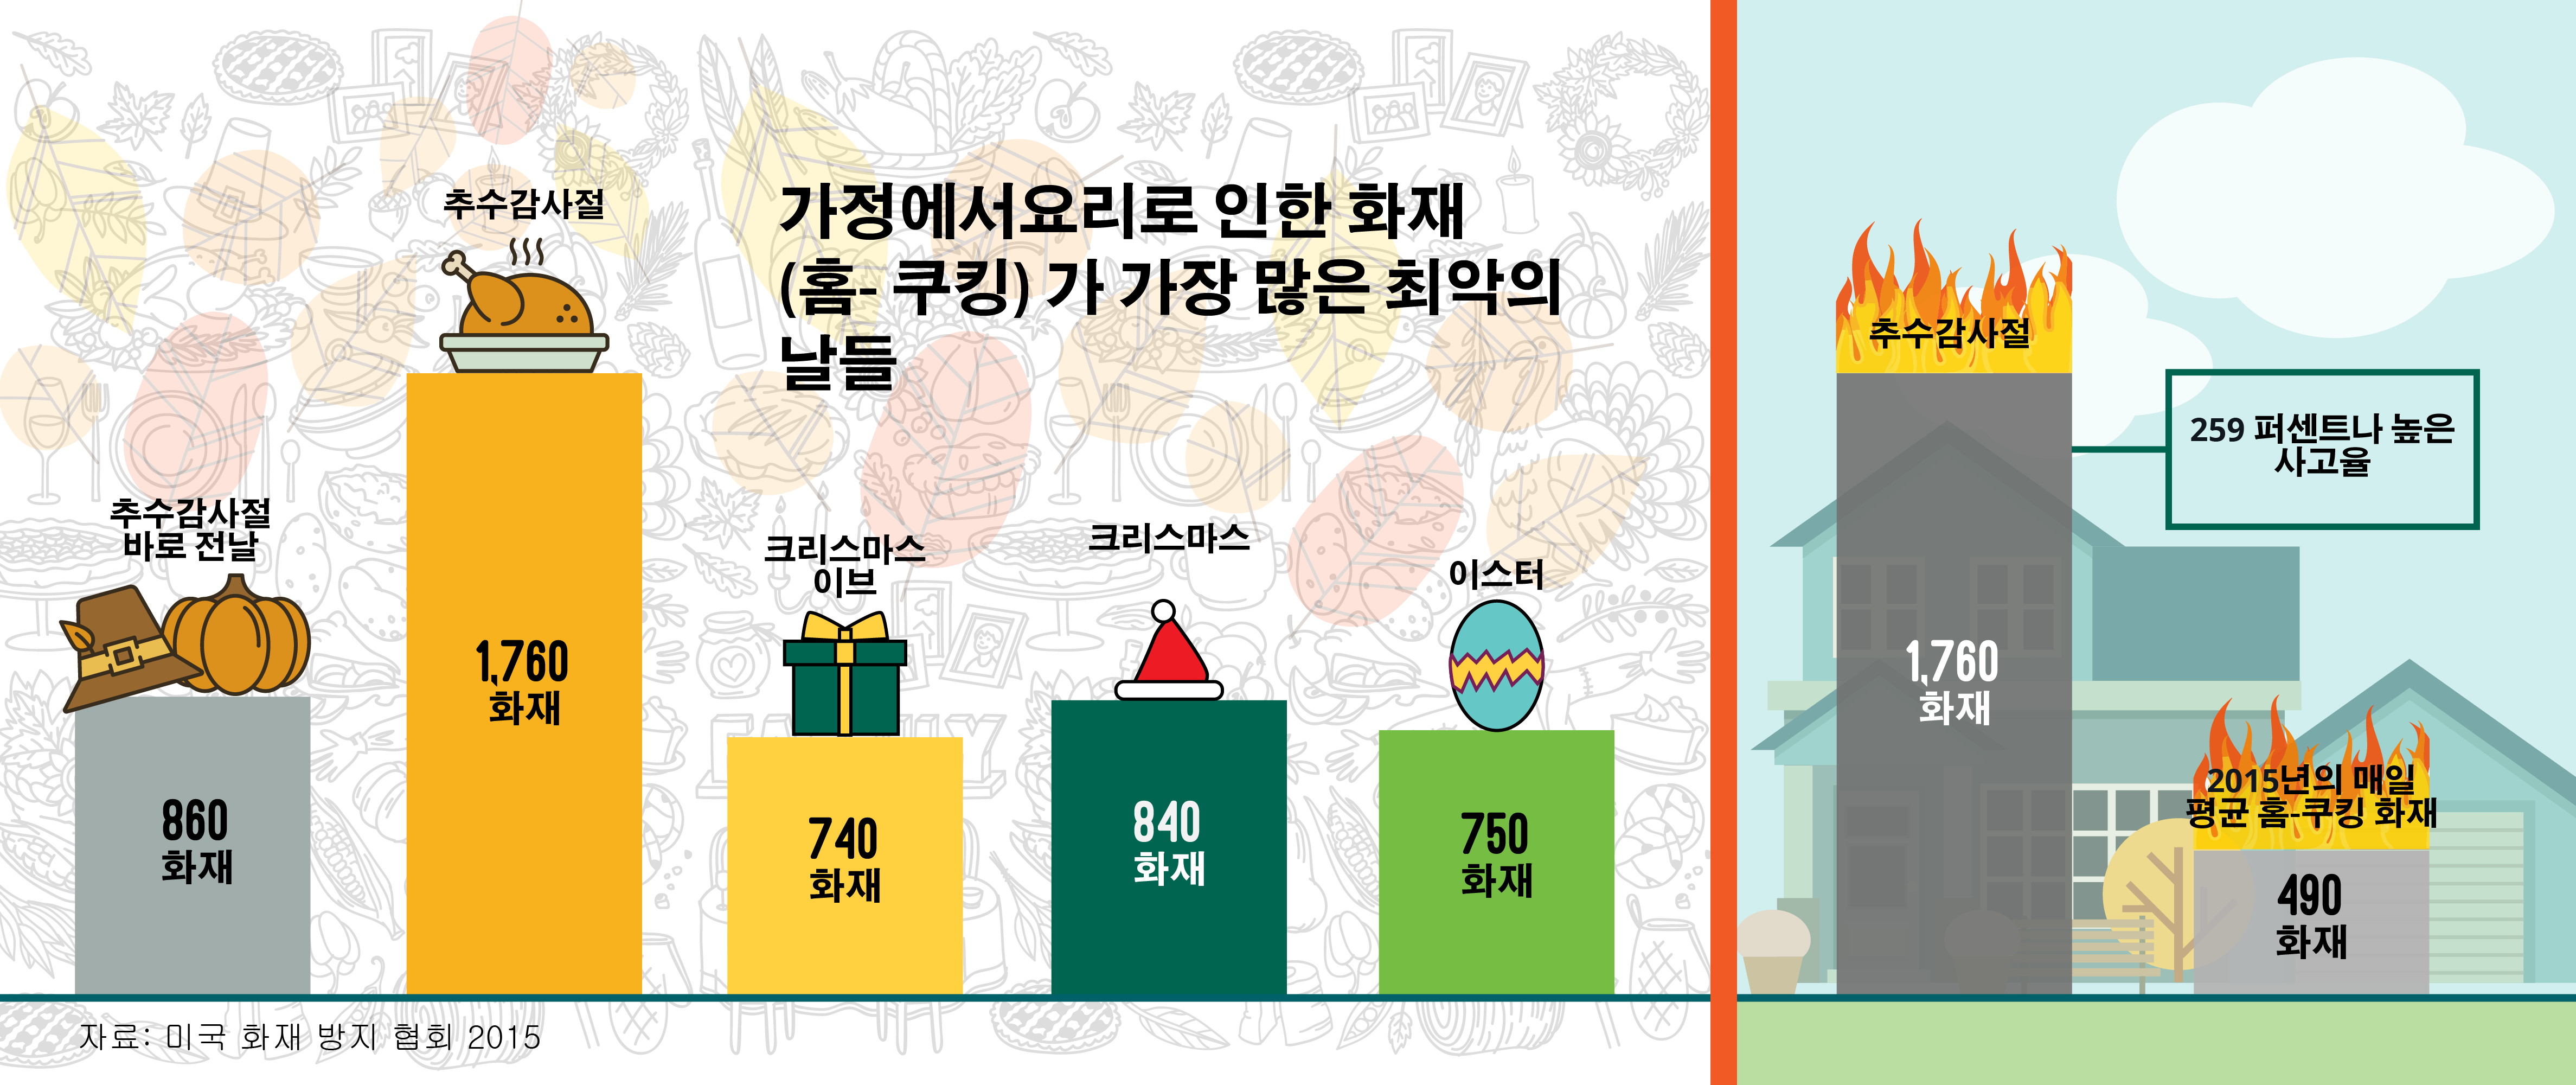 G17-118 Holidays Leading Home Fires_Korean-01